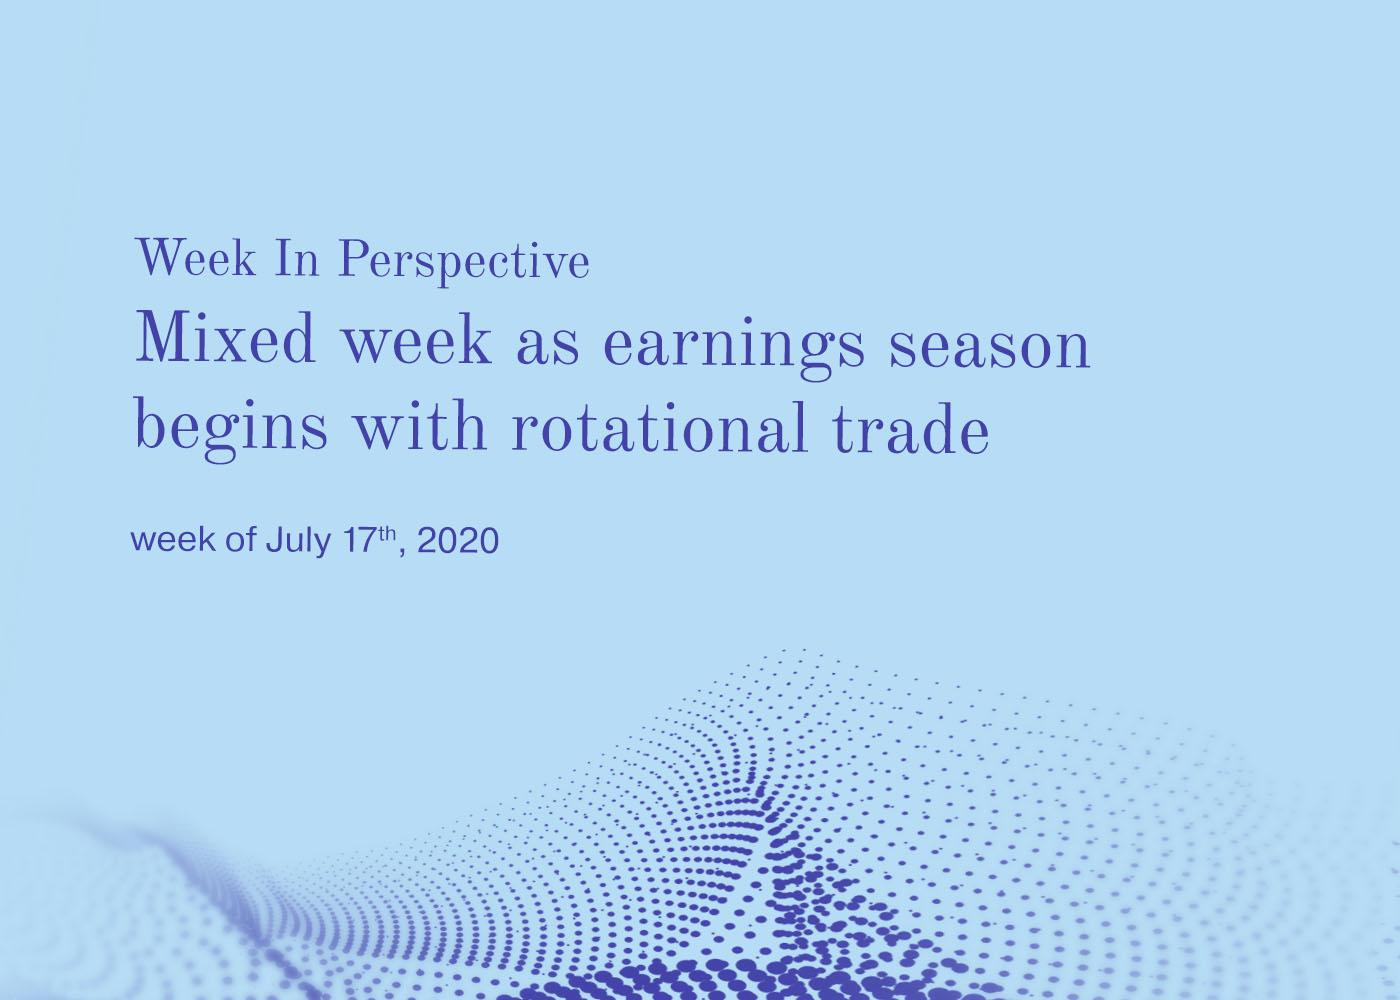 Week In Perspective July 17, 2020: Mixed week as earnings season begins with rotational trade Thumbnail